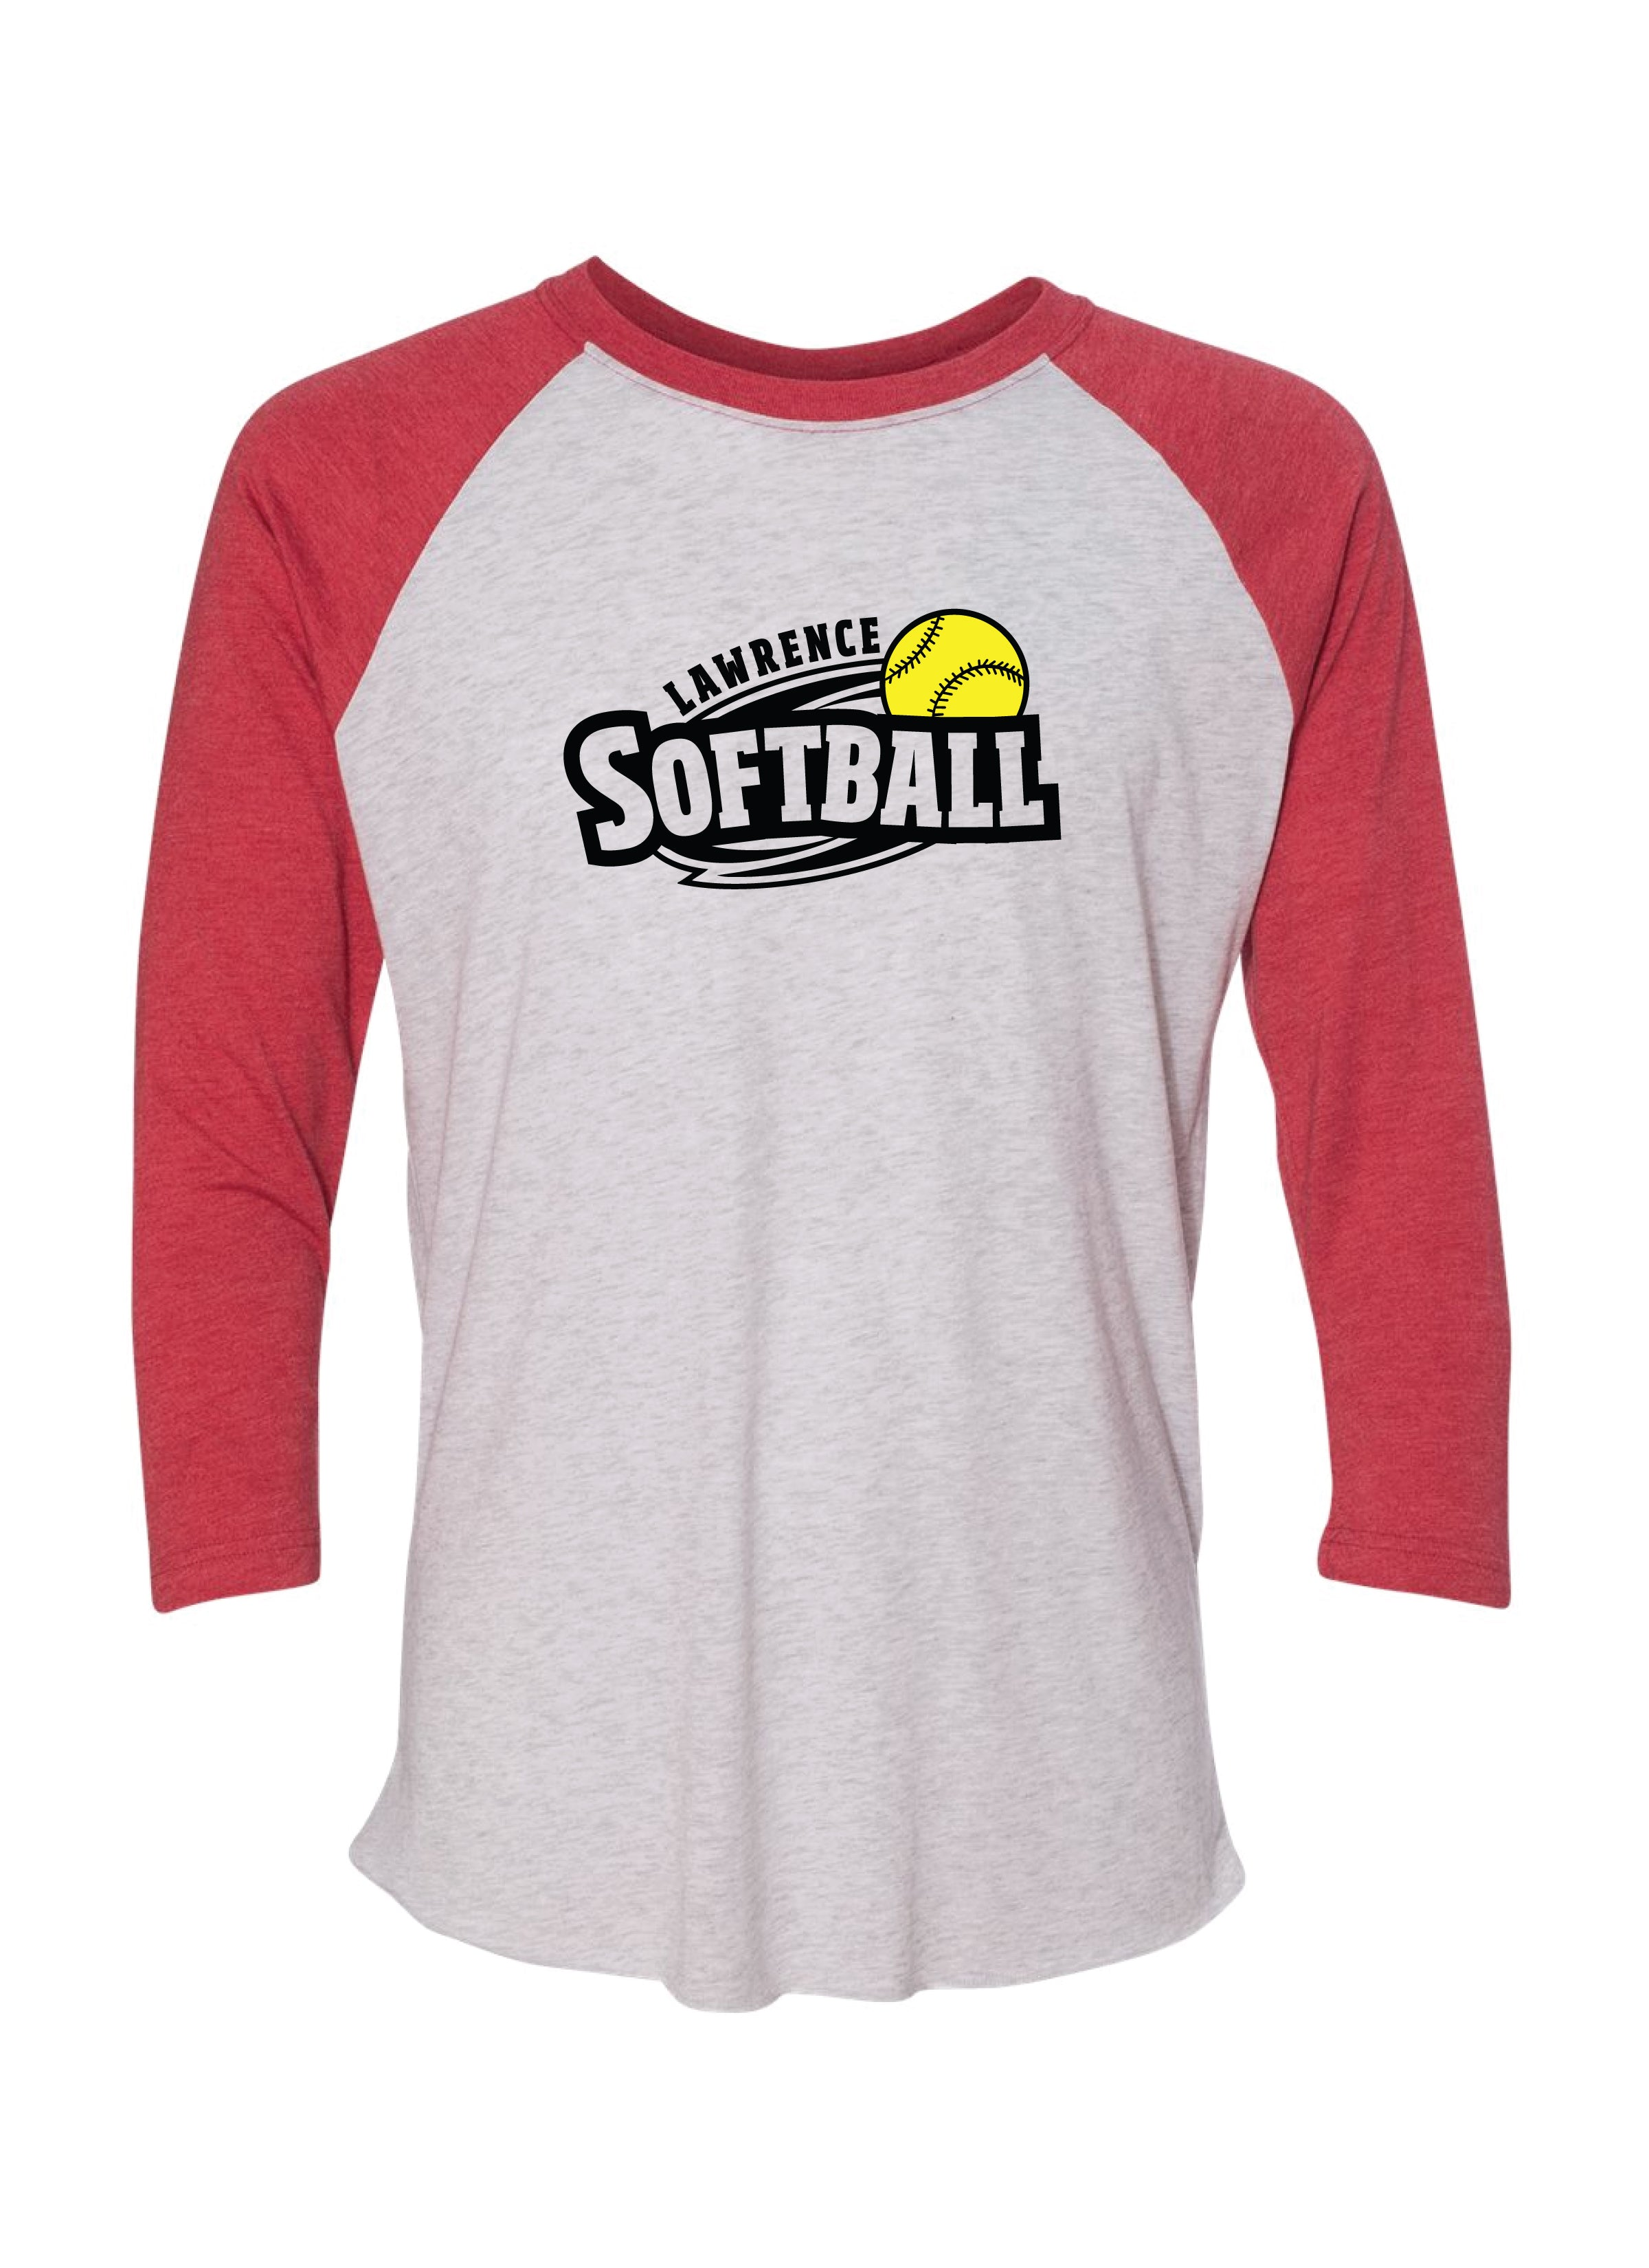 Lawrence Softball Unisex Raglan